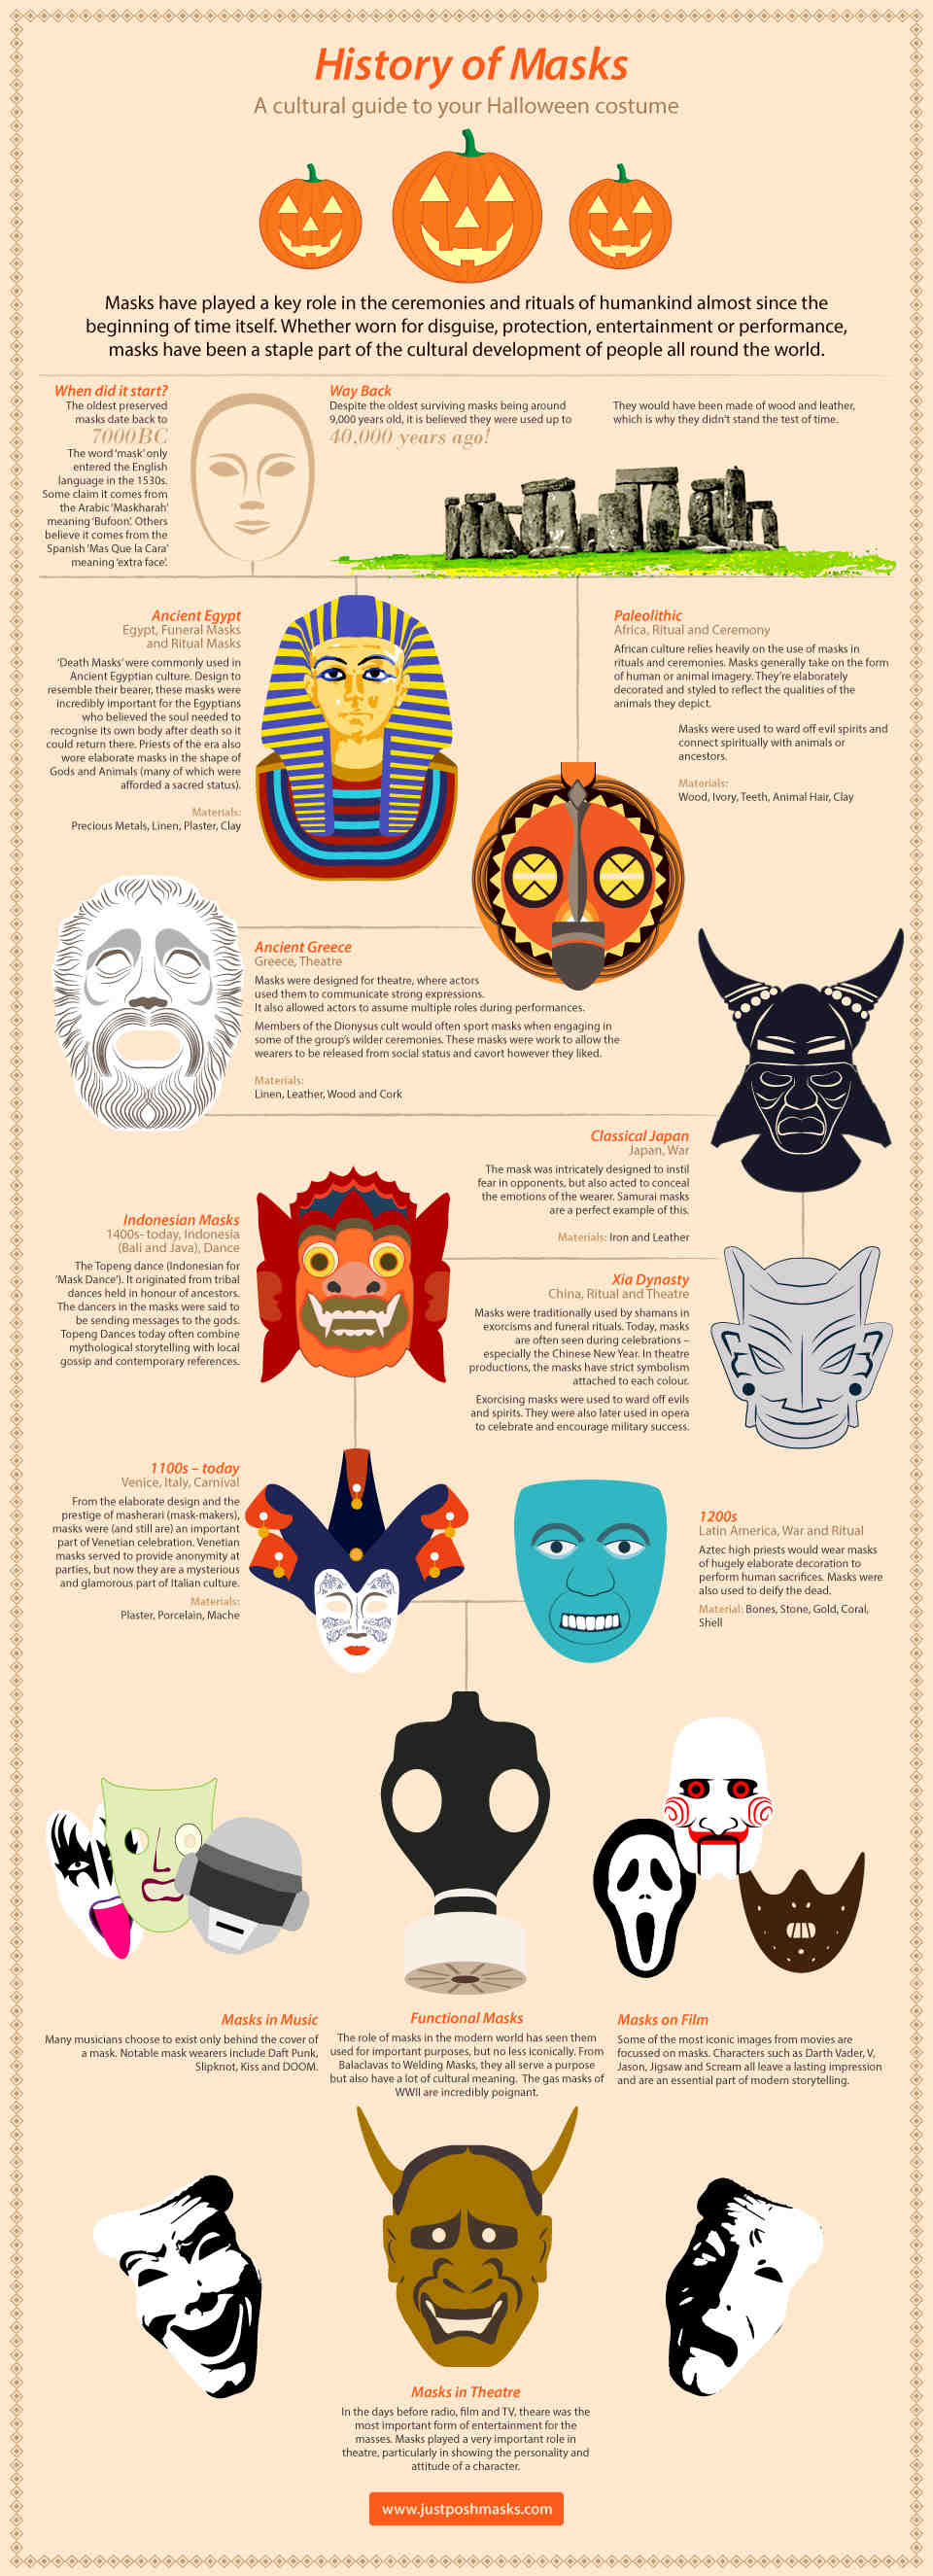 Infographic on History of Masks